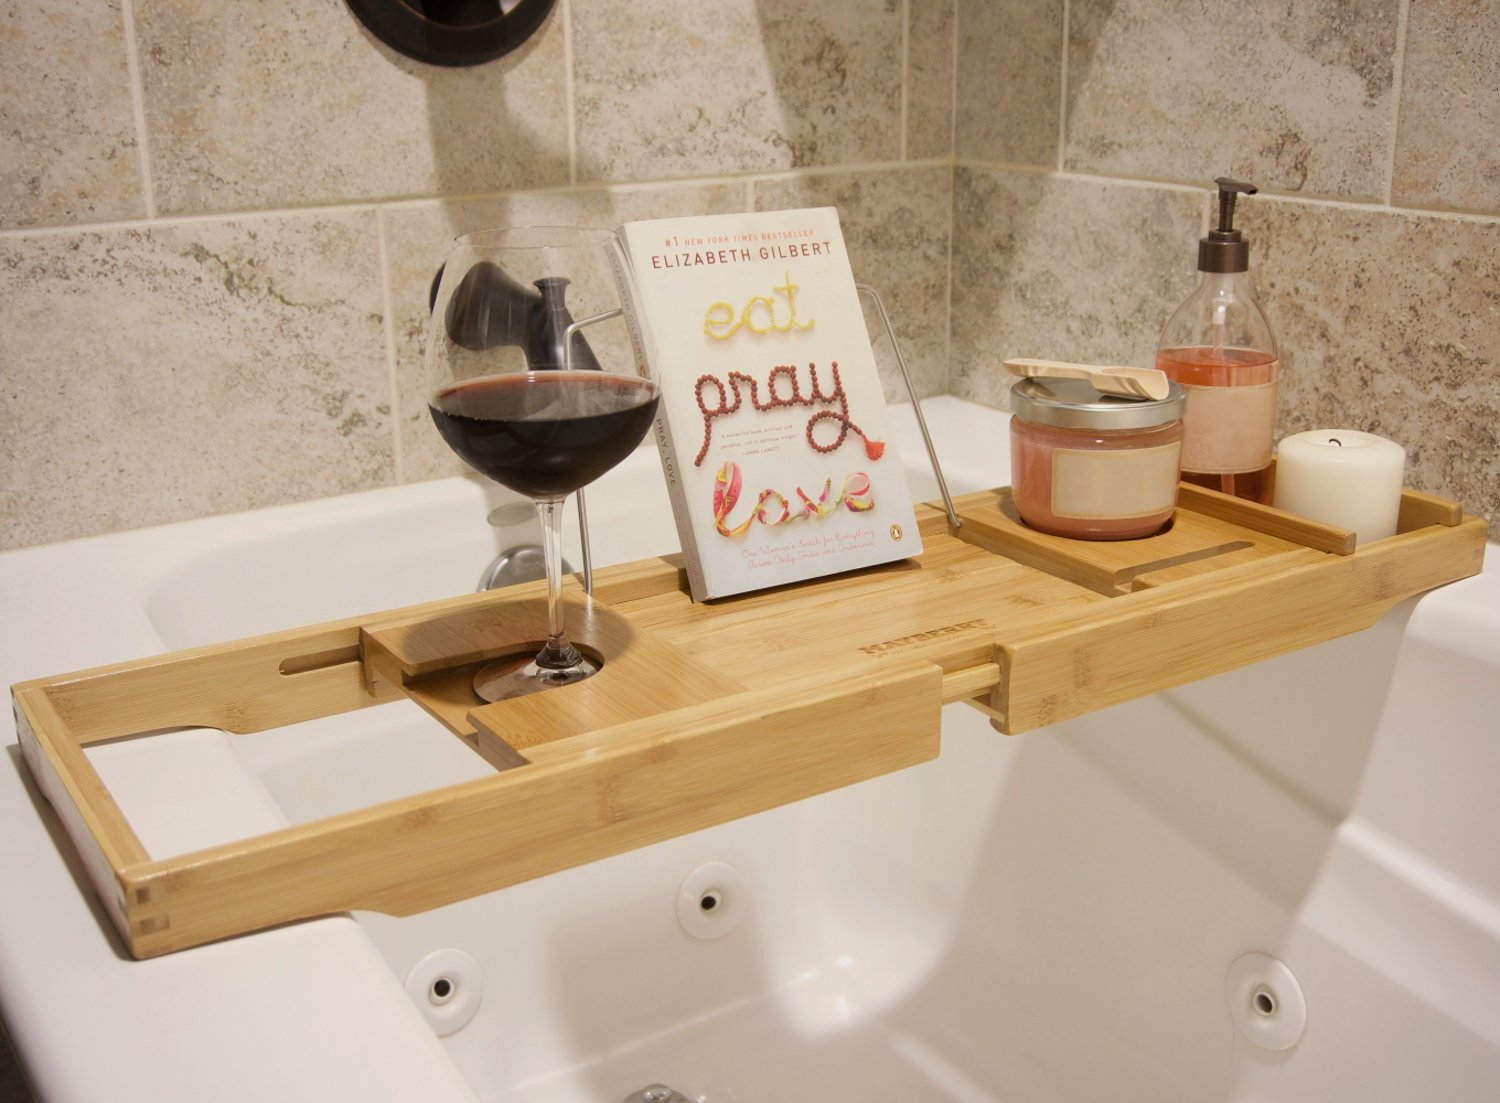 Amazon.com: Bamboo Bathtub Caddy with Arms That Extend From 29.5 Up To 43  Inches, Bathtub Tray, Large Wine Glass Holder, iPhone Slot, Collapsible  Book and ...